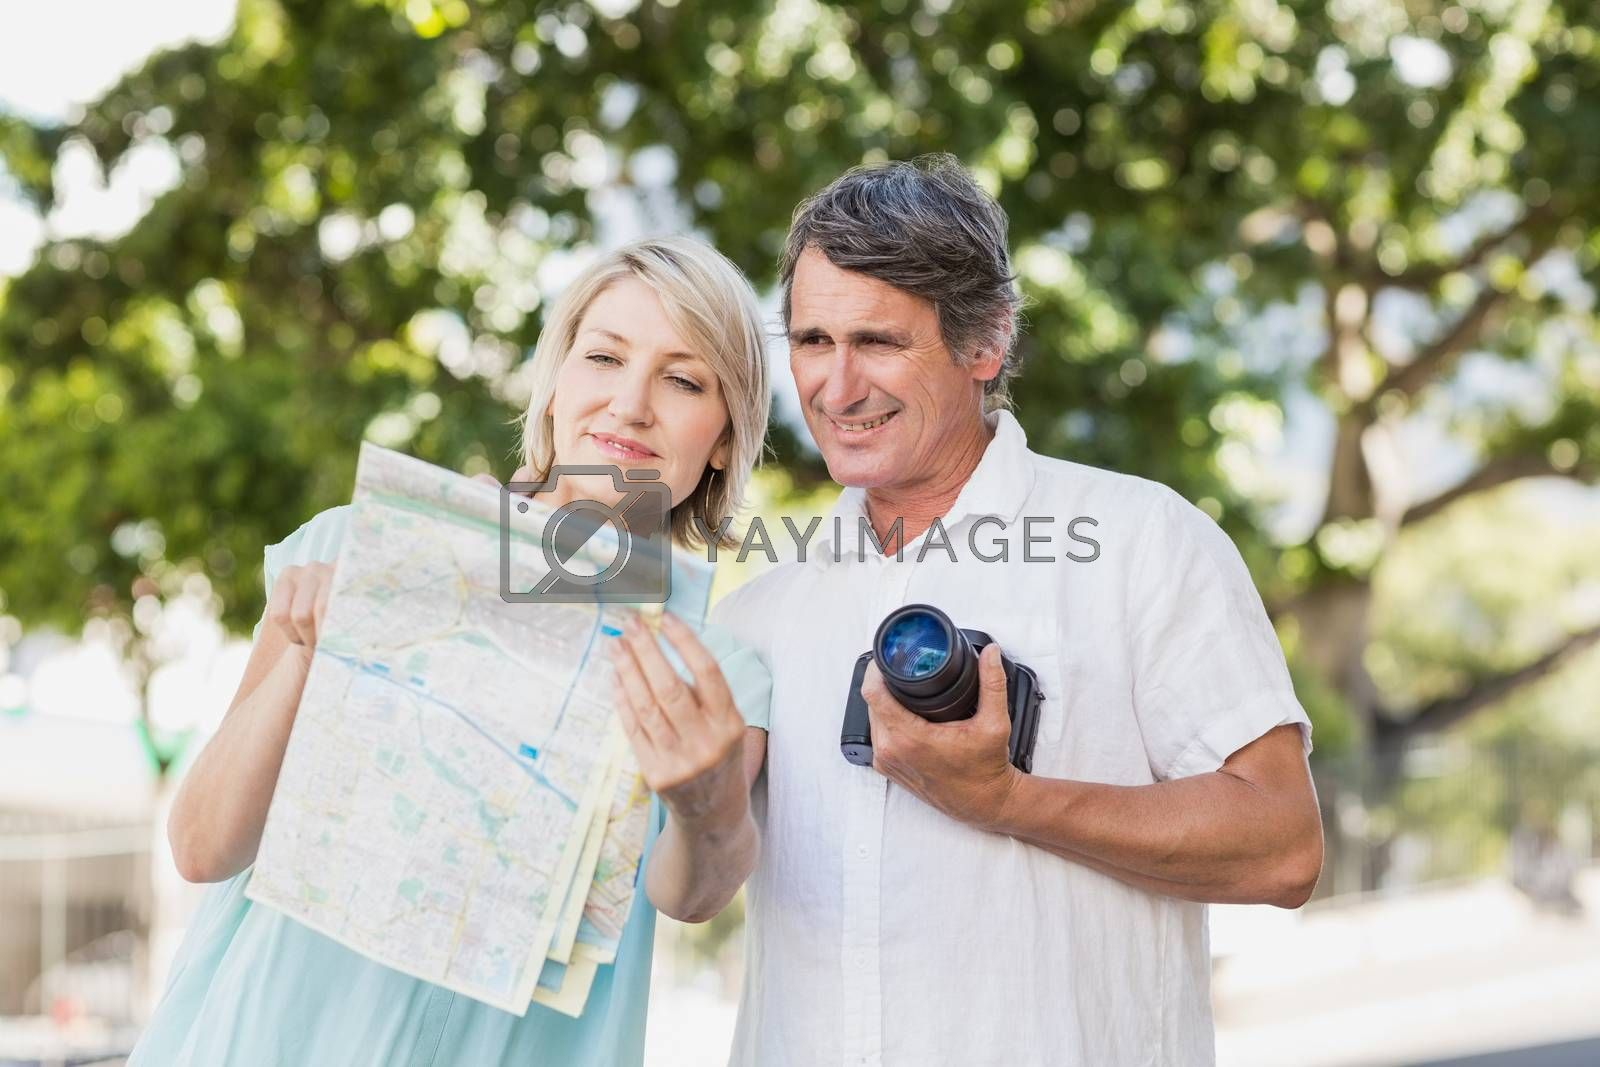 Couple looking at map with camera in city